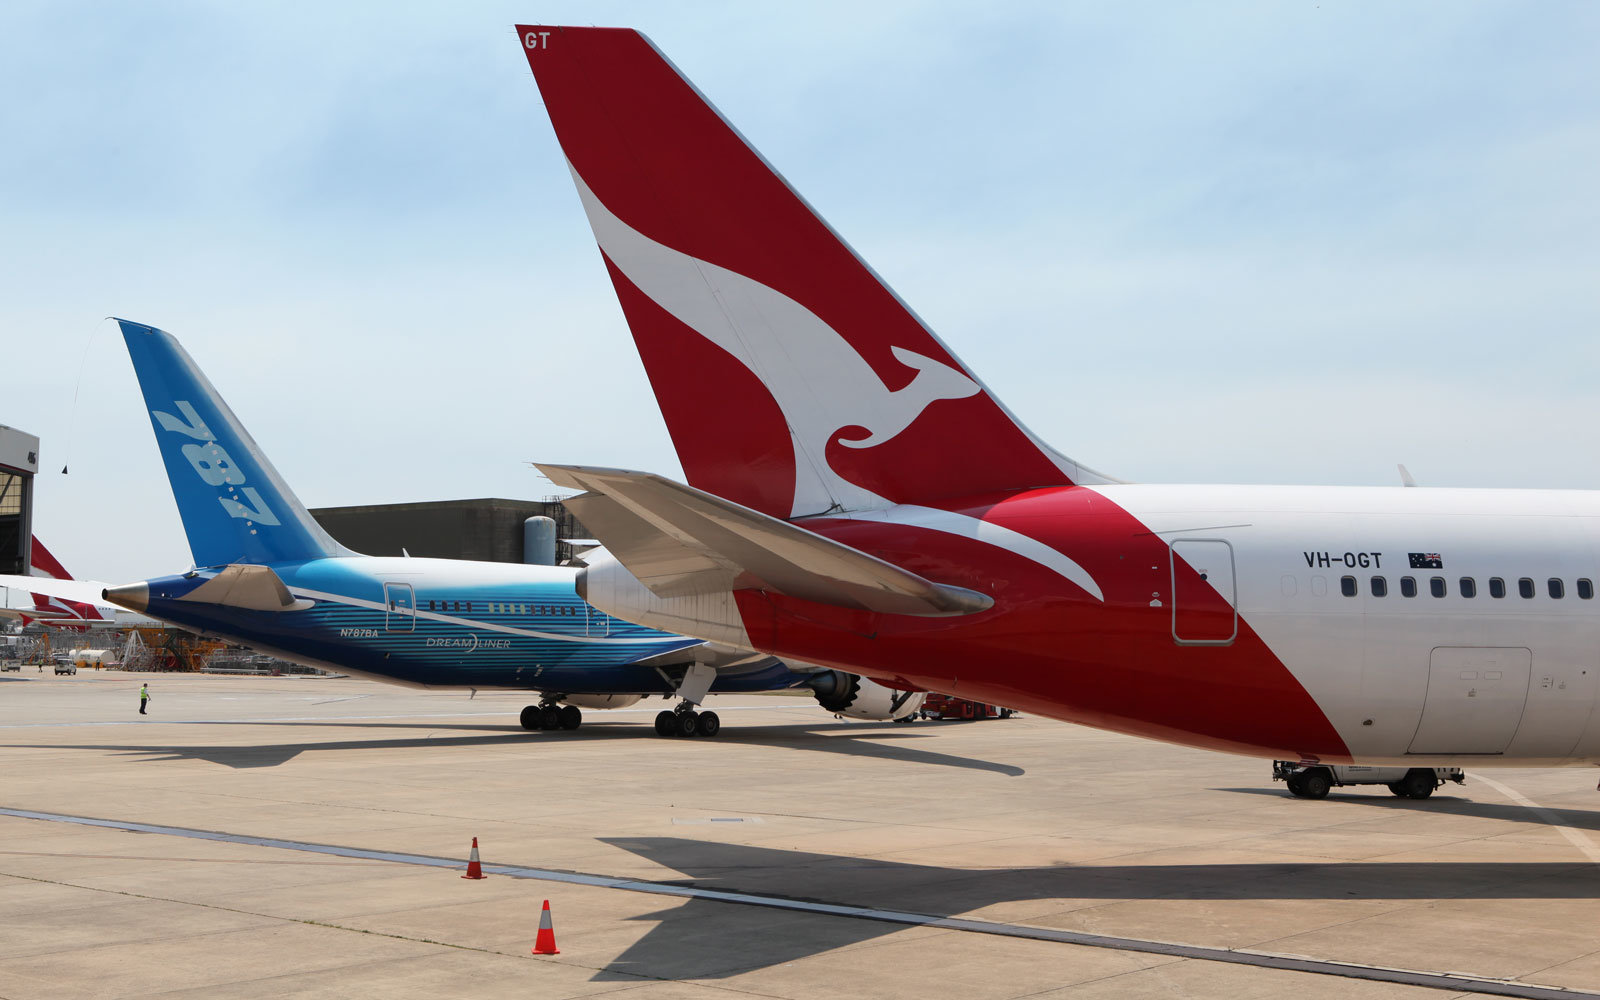 Qantas goes after world's longest flight again: